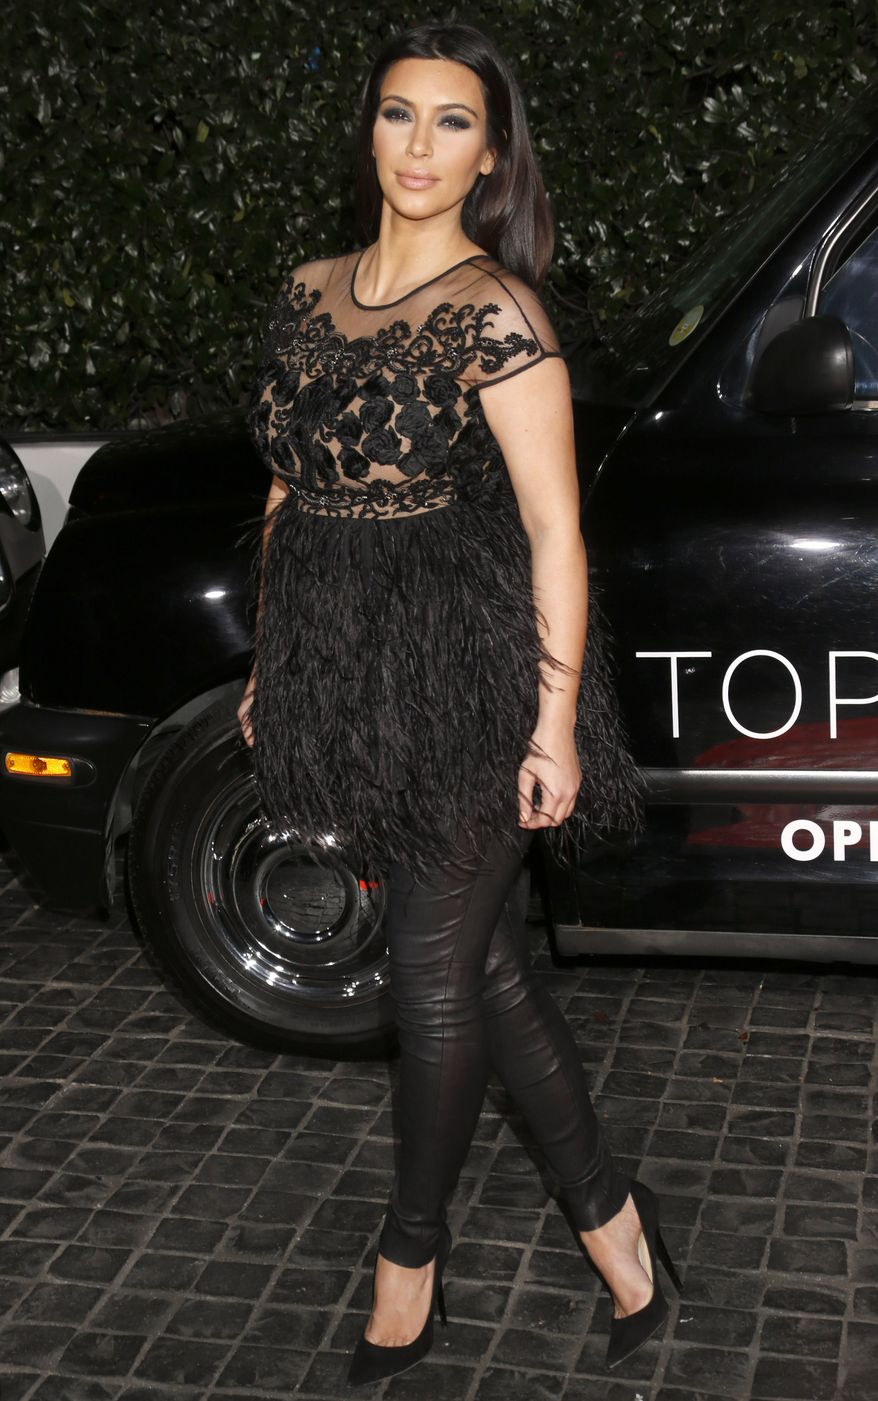 Kim Kardashian attends the Topshop Topman LA Opening Party At Cecconi's in Los Angeles on Feb. 13, 2013. (Todd Williamson/Invision/Associated Press)